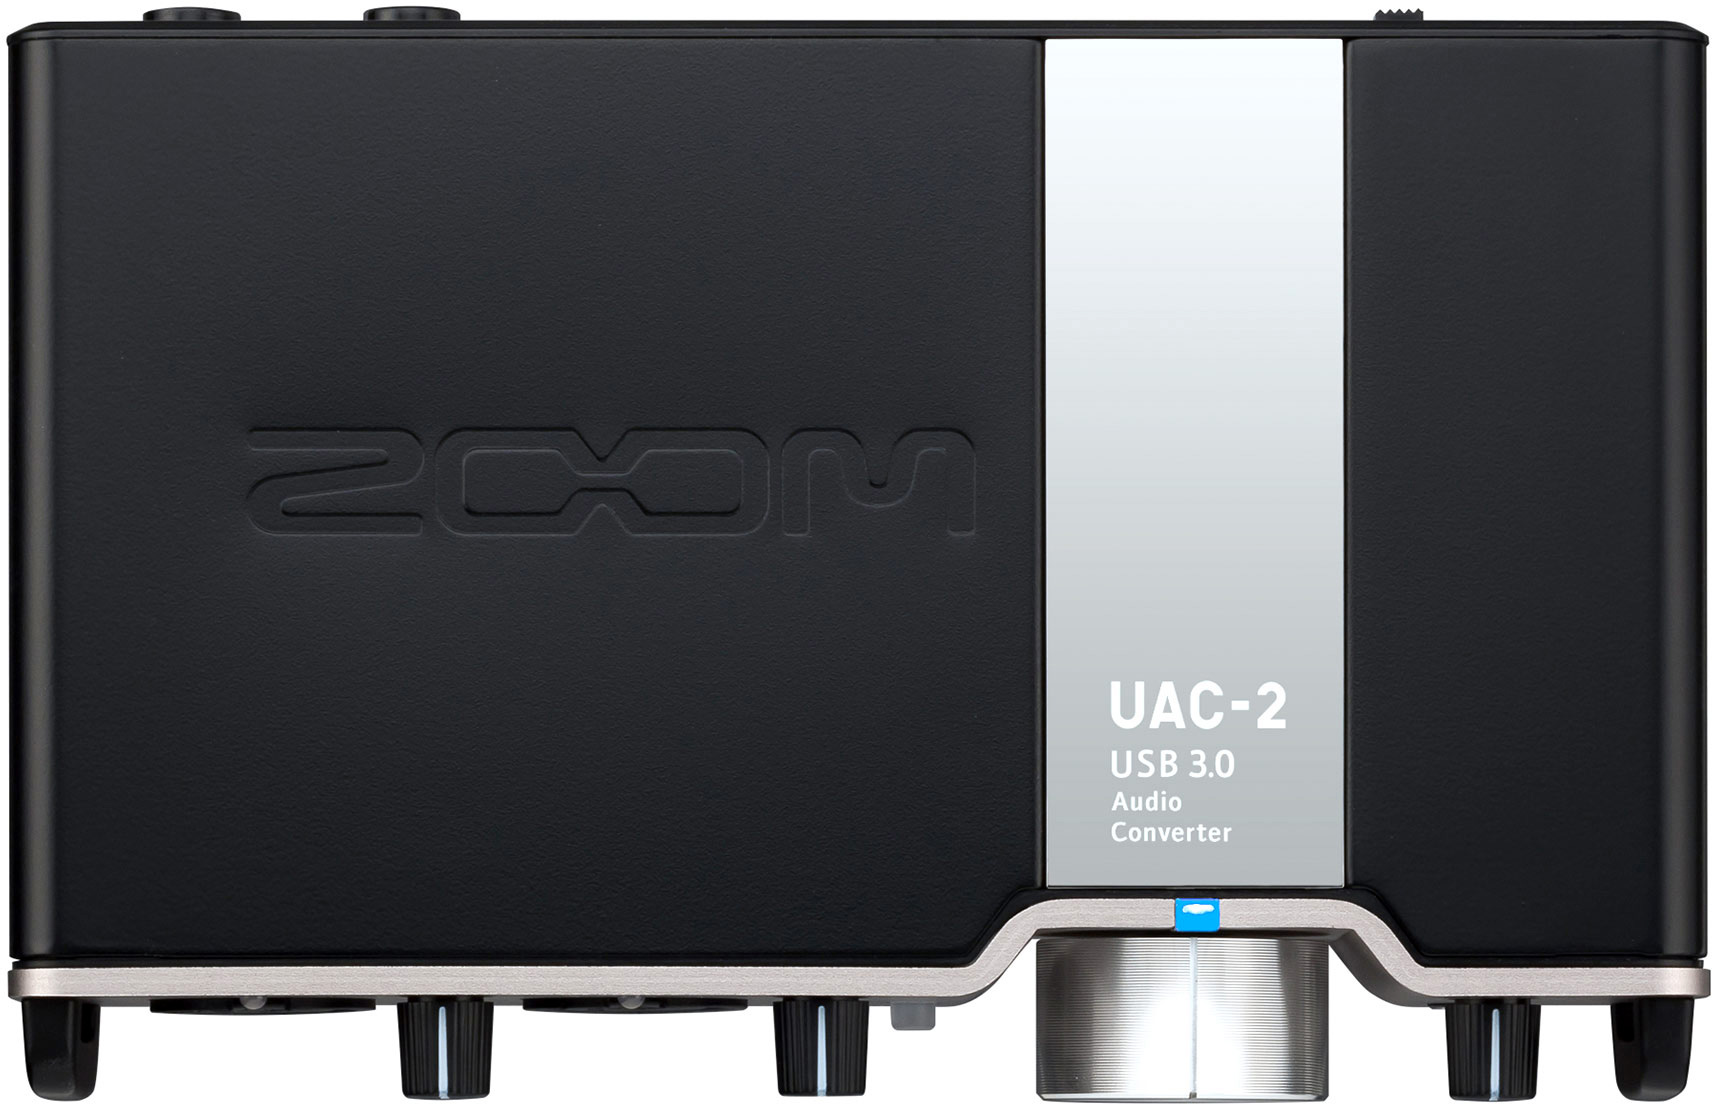 zoom uac 2 usb 3 0 superspeed audio converter for mac and pc. Black Bedroom Furniture Sets. Home Design Ideas